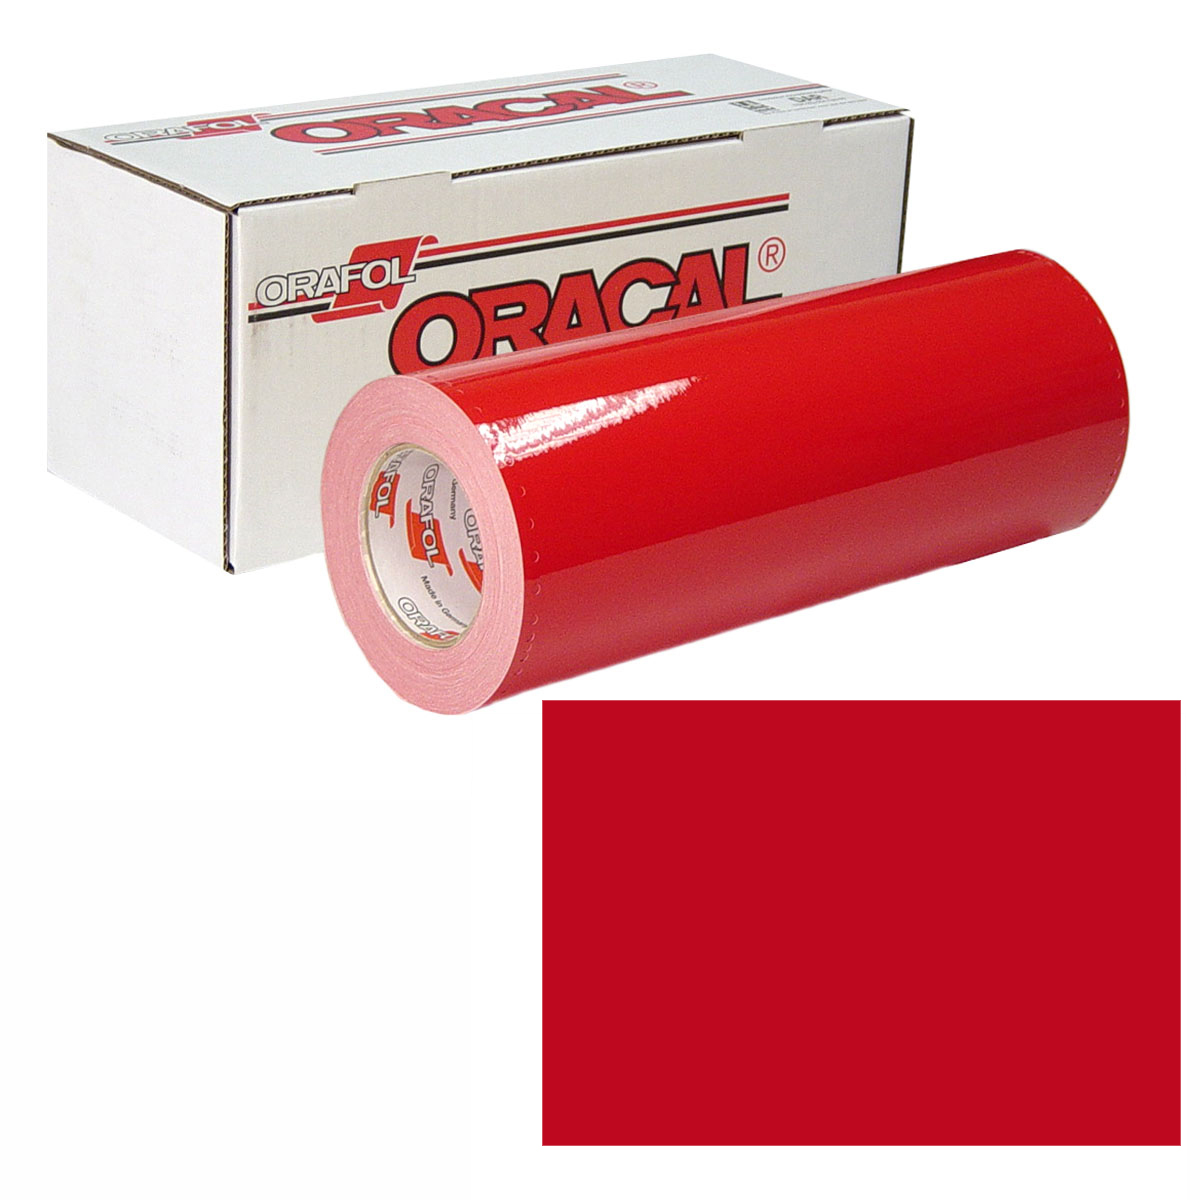 ORACAL 951 15In X 50Yd 028 Cardinal Red